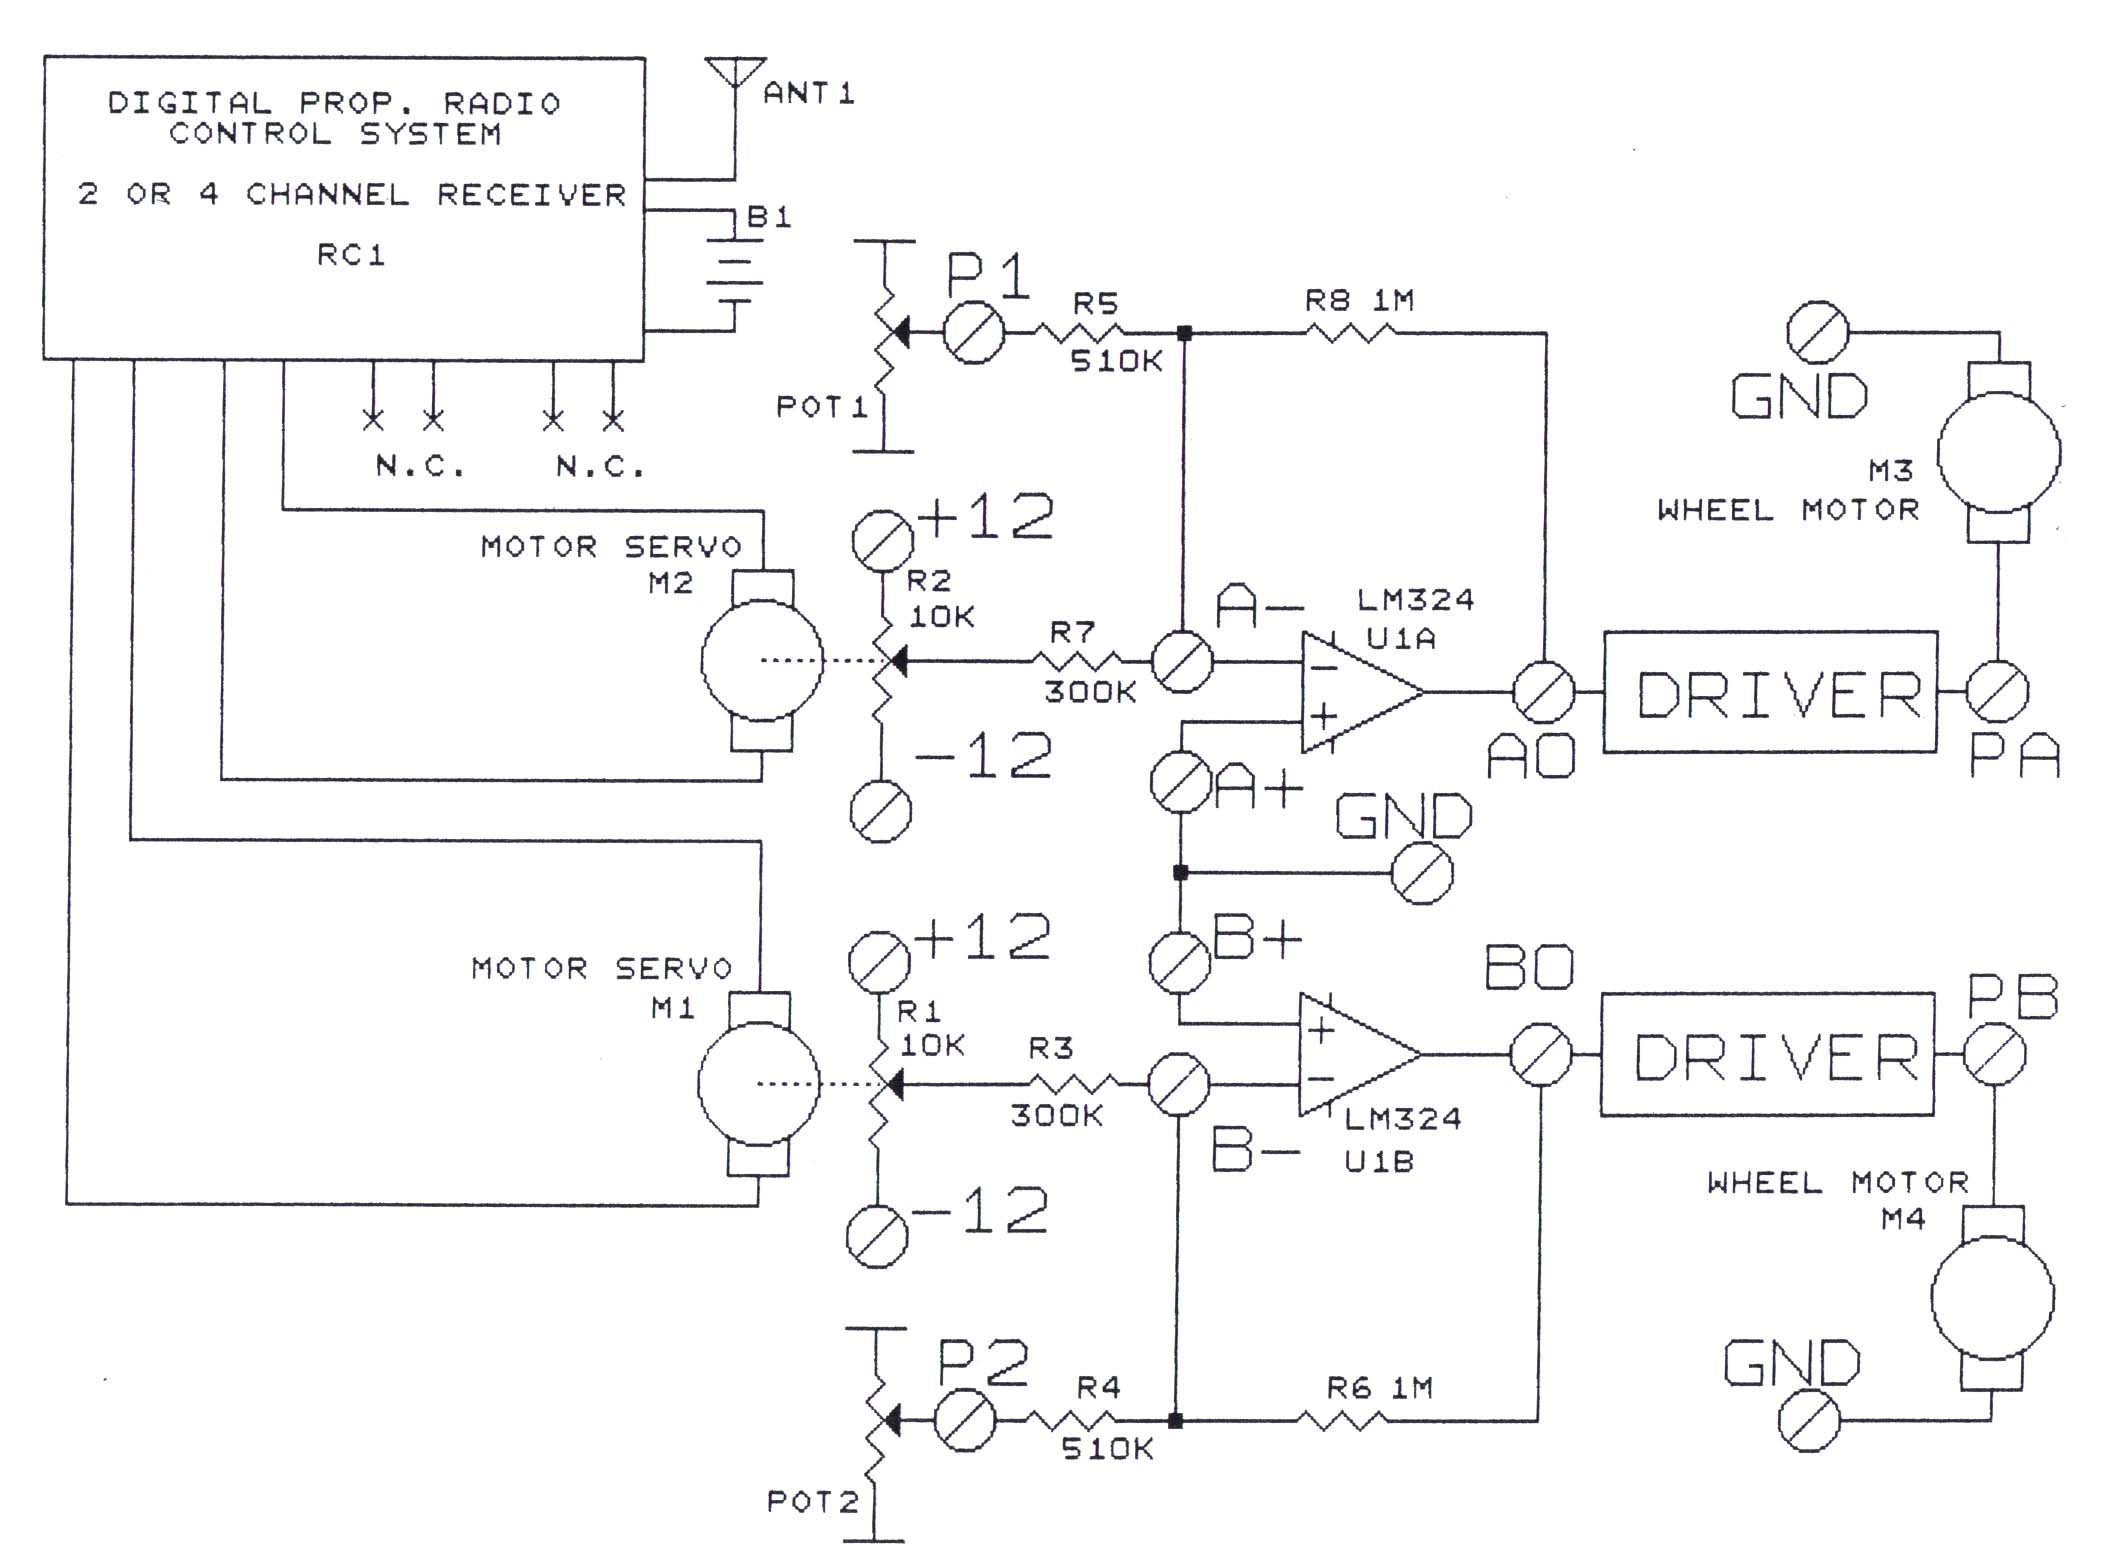 instructional diagram for radio remote control using the power amplifier board  [ 2124 x 1564 Pixel ]